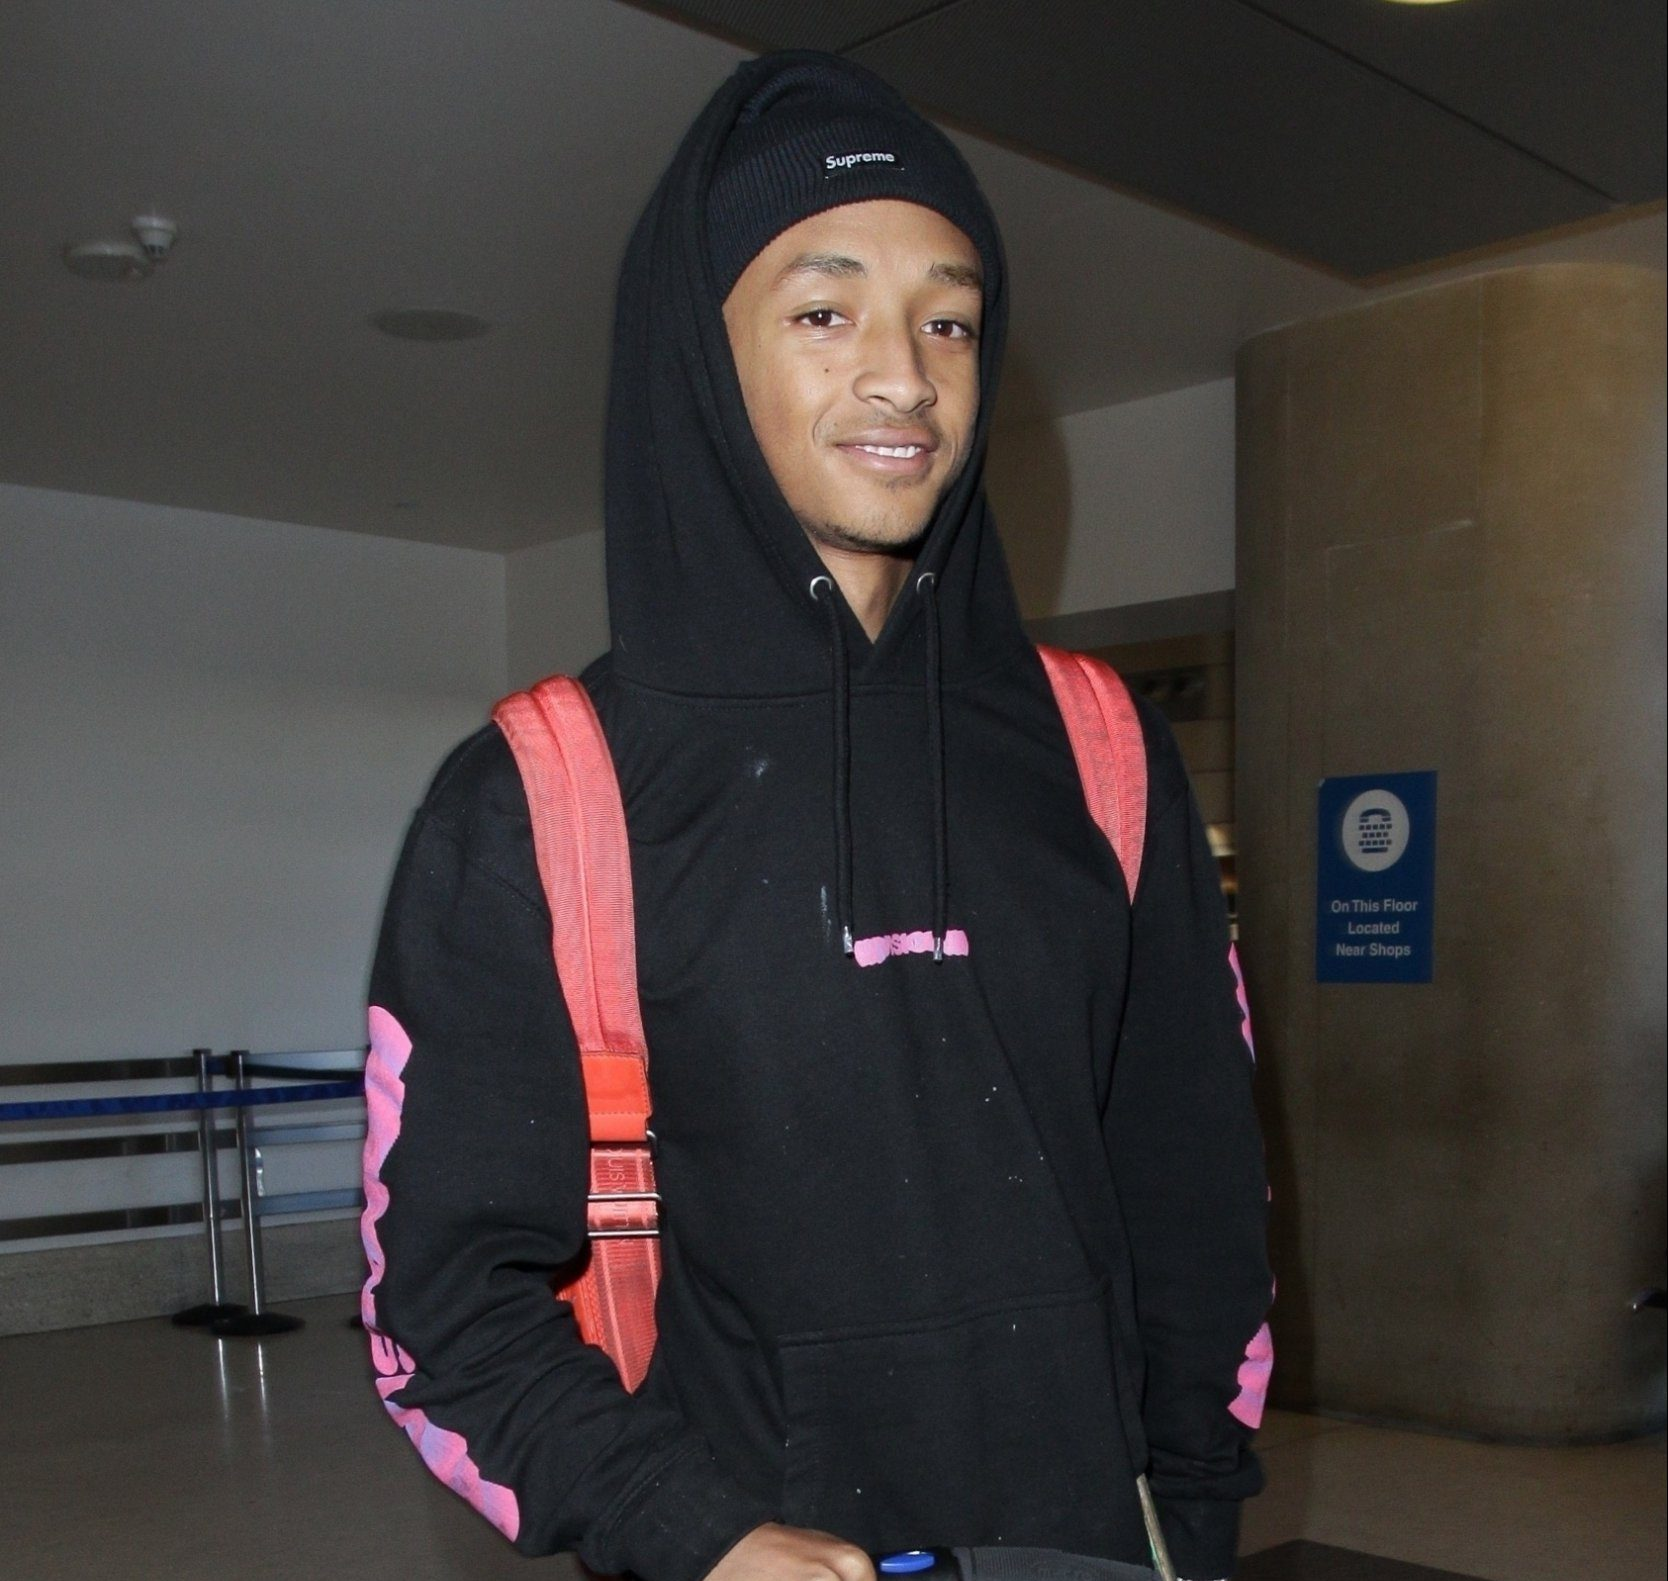 Los Angeles, CA - Jaden Smith shows off a laid back style as he departs LAX. Jaden looks incognito in a black hoodie as he smiles while making his way through the airport on a luggage scooter. Pictured: Jaden Smith BACKGRID USA 25 NOVEMBER 2018 BYLINE MUST READ: GOME / BACKGRID USA: +1 310 798 9111 / usasales@backgrid.com UK: +44 208 344 2007 / uksales@backgrid.com *UK Clients - Pictures Containing Children Please Pixelate Face Prior To Publication*